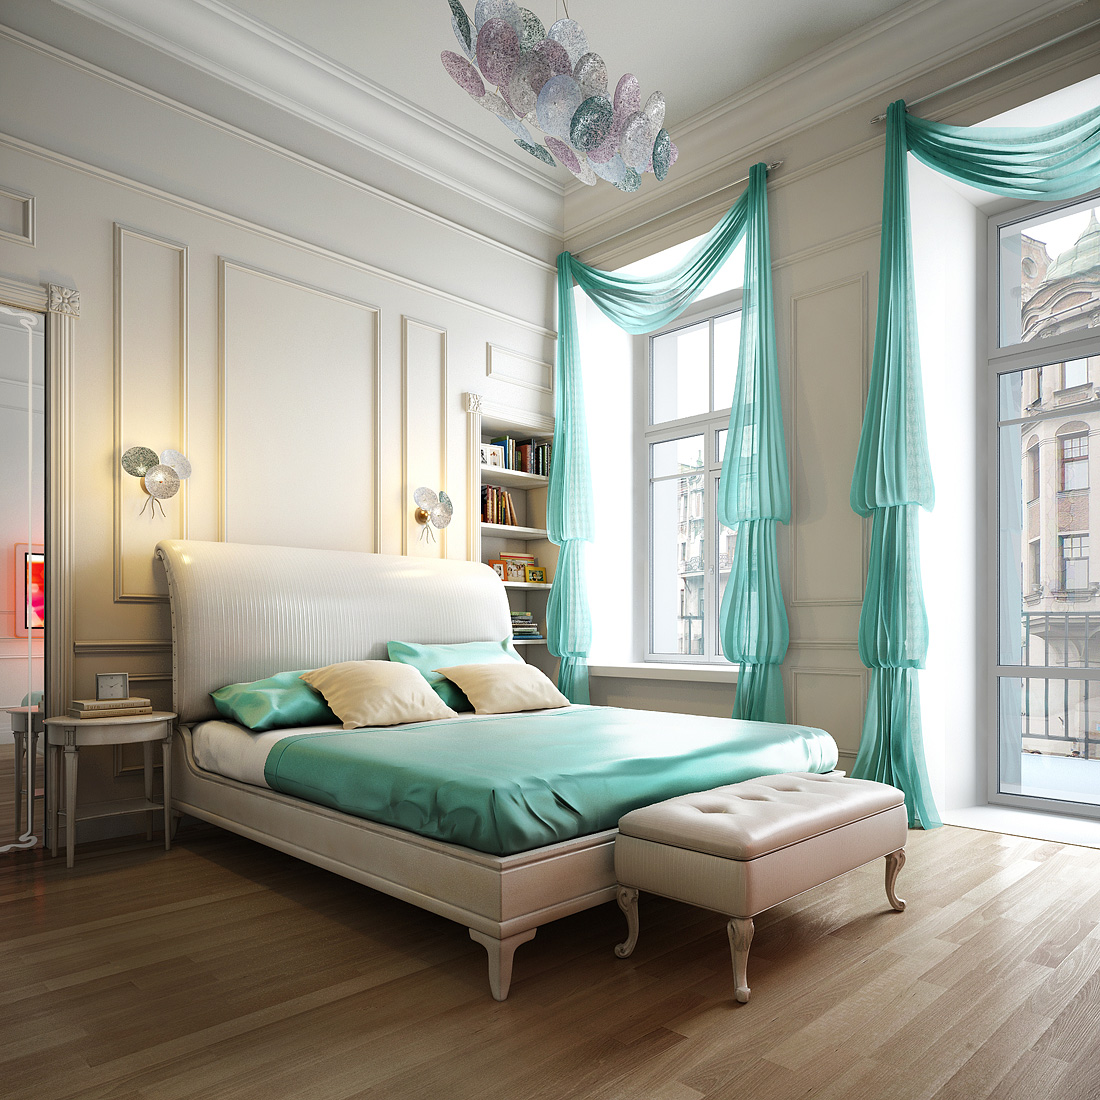 How to make bedroom more relaxing  Interior Designing Ideas